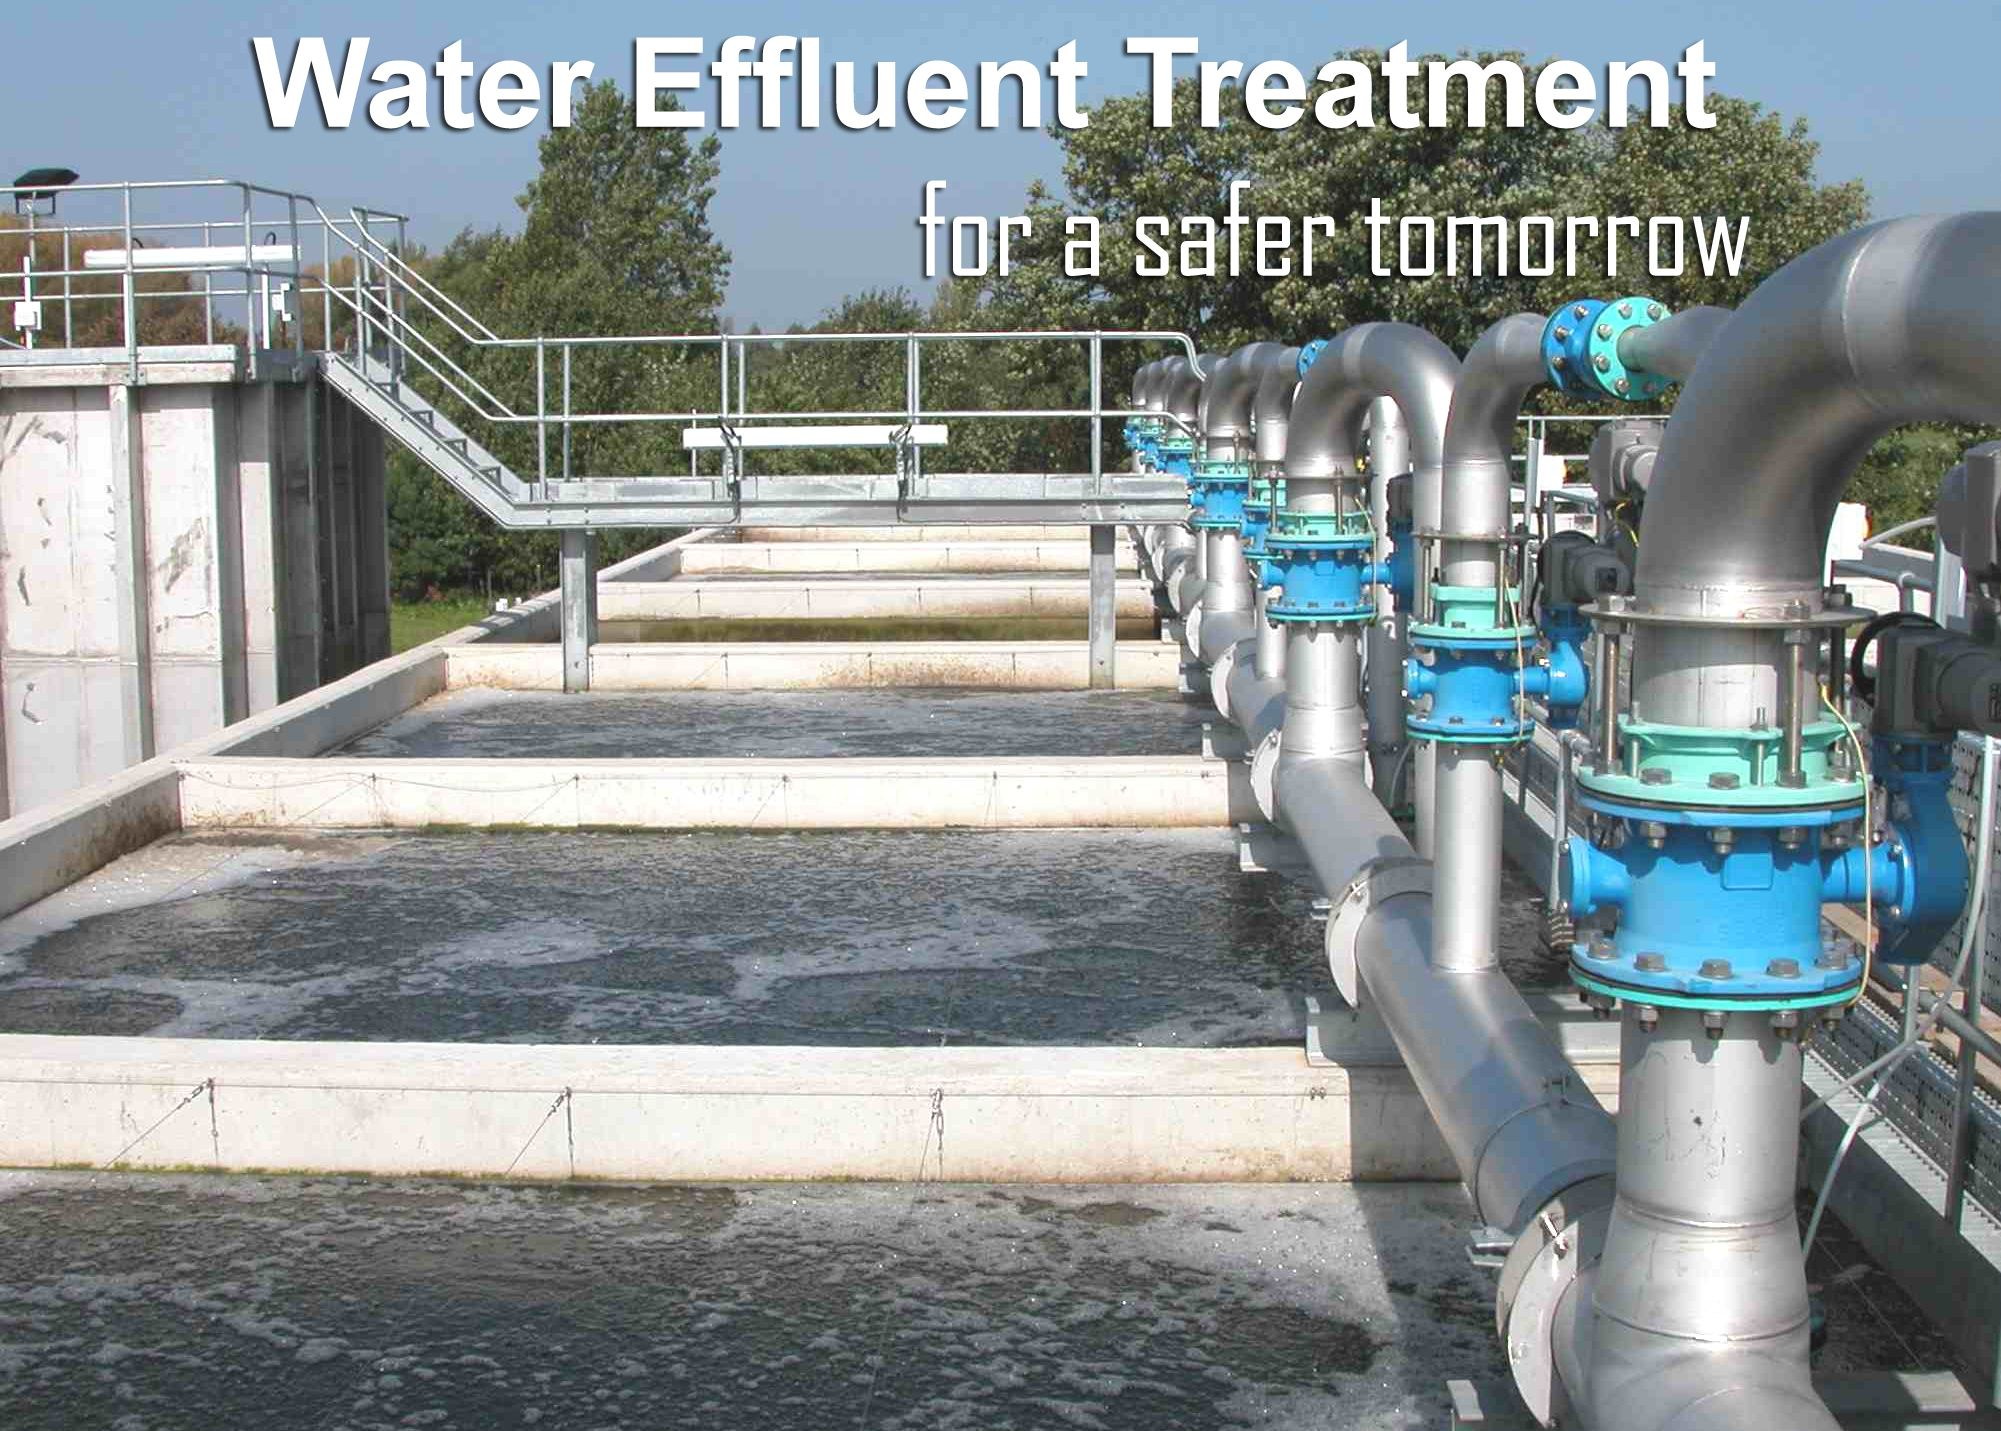 Sewage Wastewater Treatment Industrial Wastewater Treatment